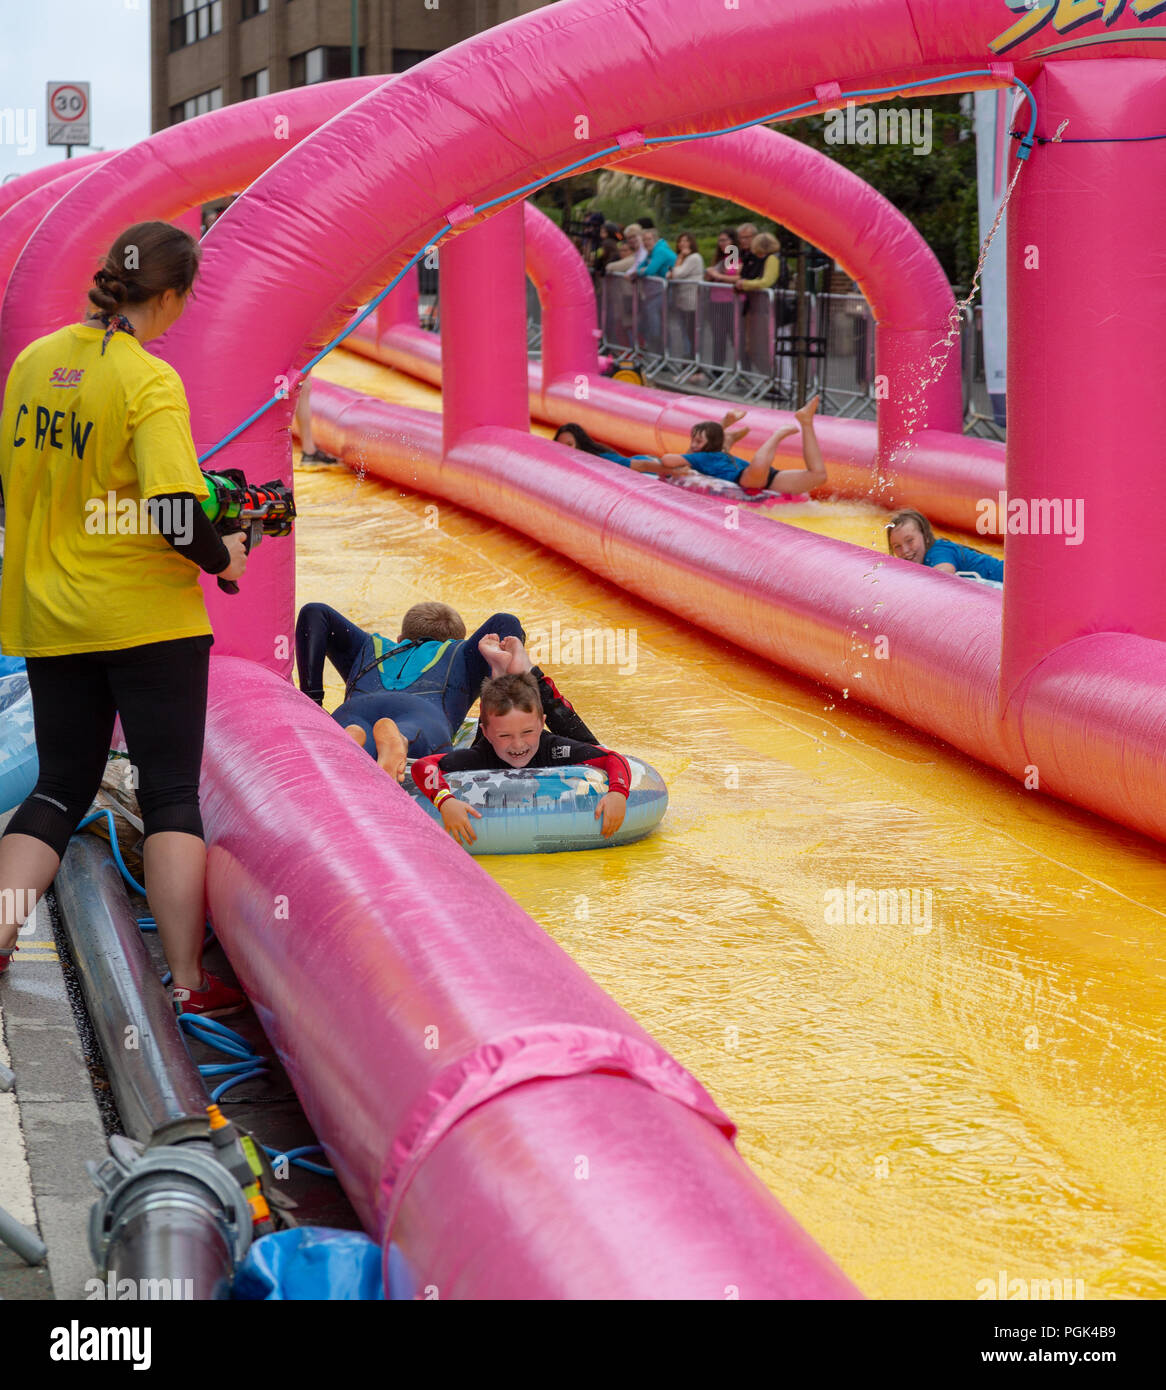 Inflatable Slide Bournemouth